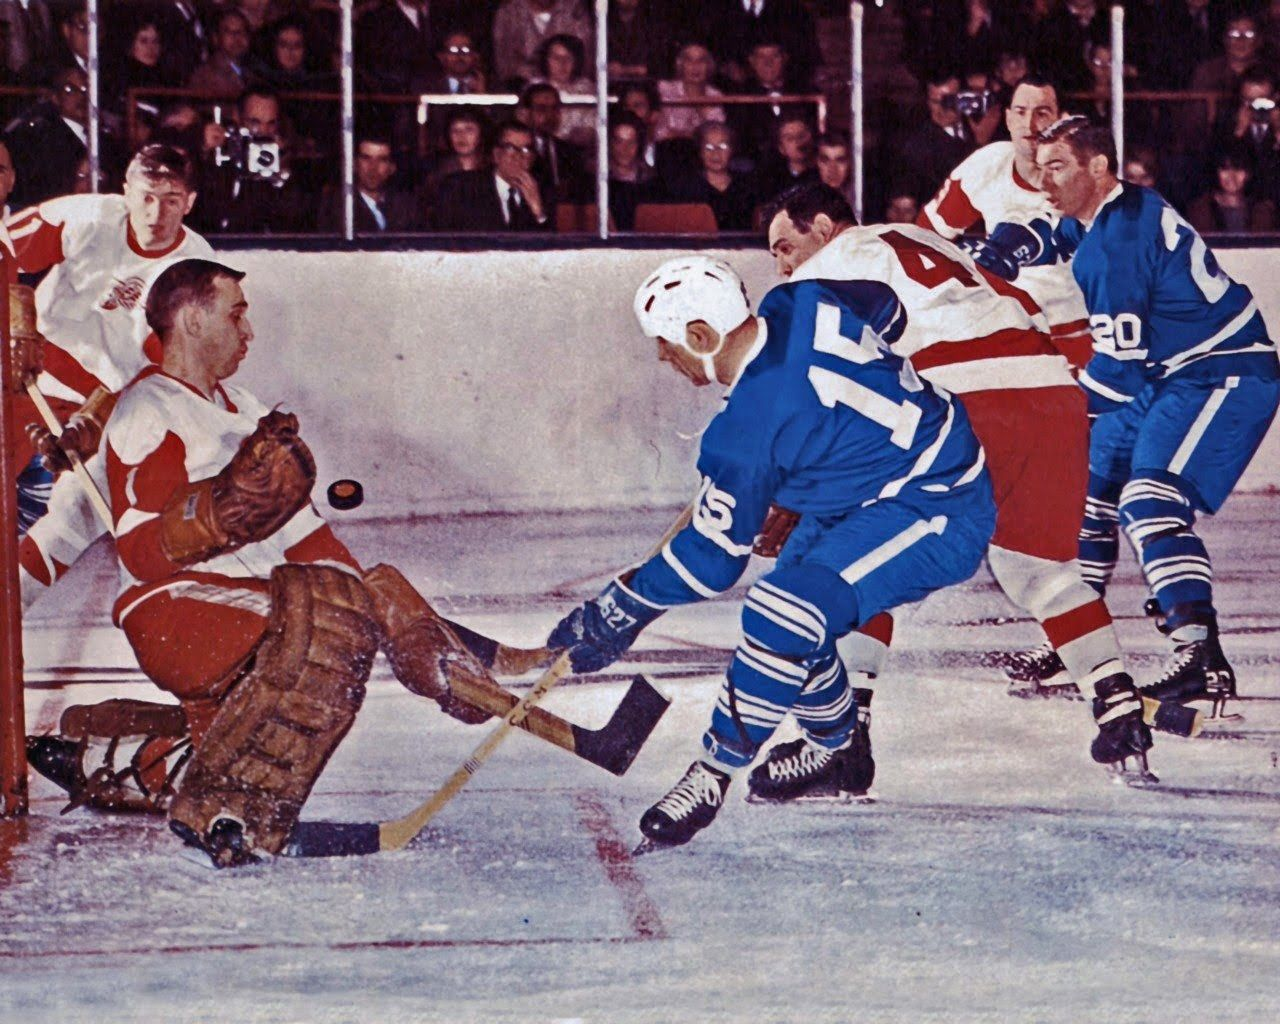 Red Wings (with Roger Crozier in goal) vs Toronto Maple